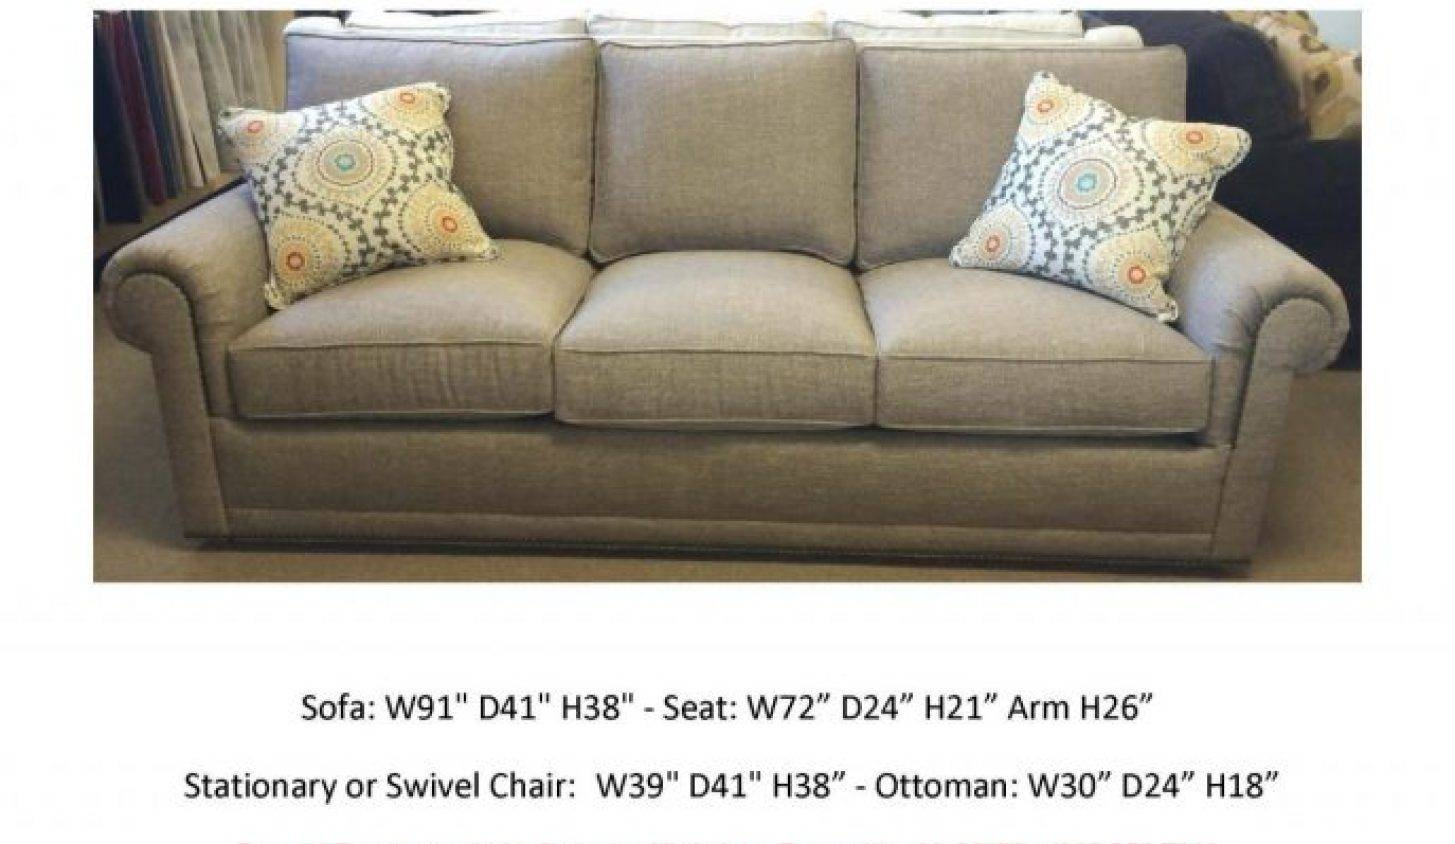 Extraordinary Impression Newport 3 Seater Sofa Great Sofa Bed For intended for Clayton Marcus Sofas (Image 7 of 15)